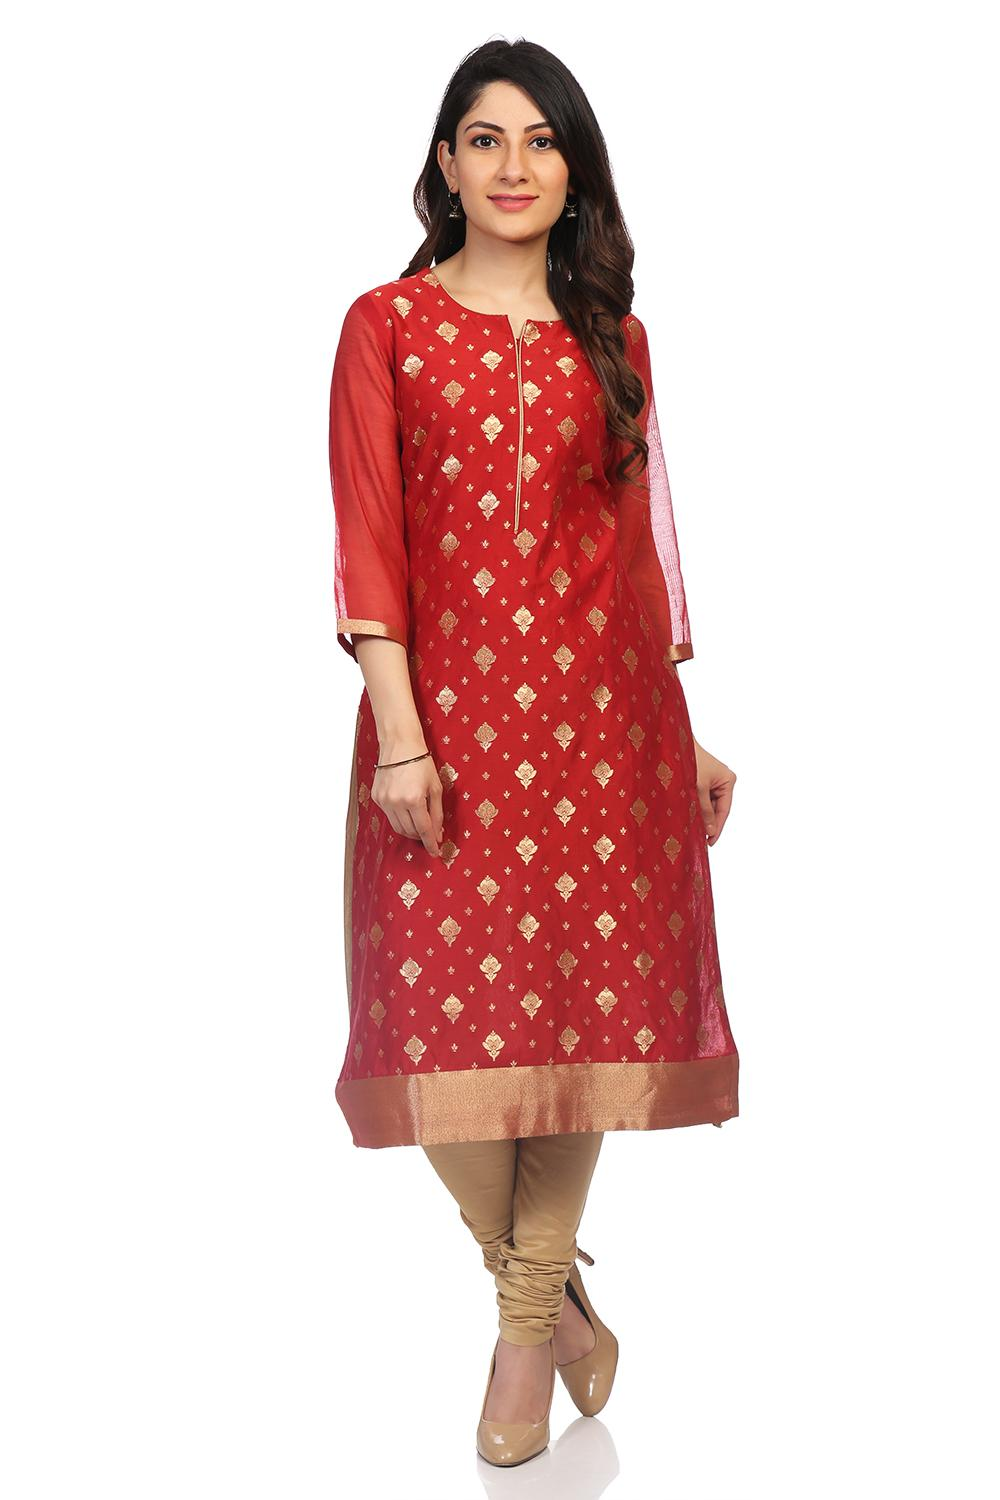 Red Poly Metallic Cotton Straight Kurta - PUJACOL1